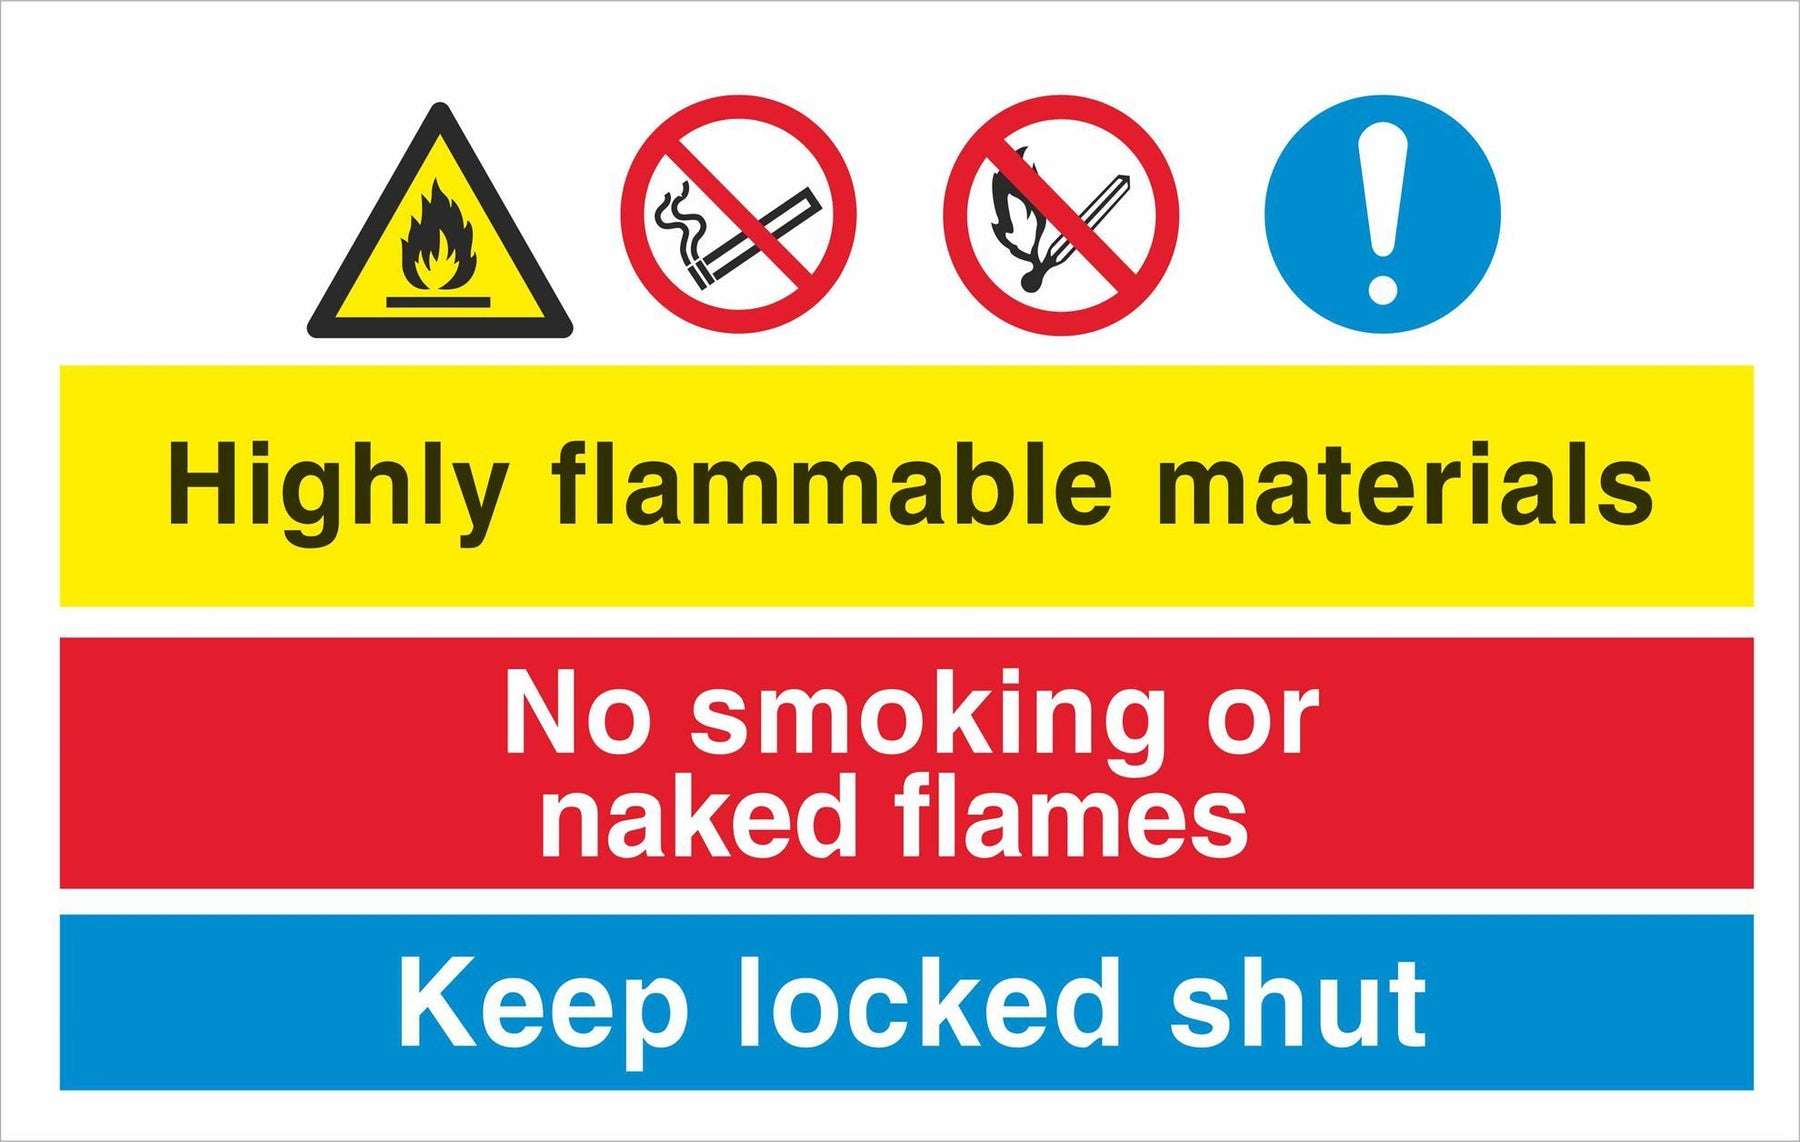 Highly flammable materials